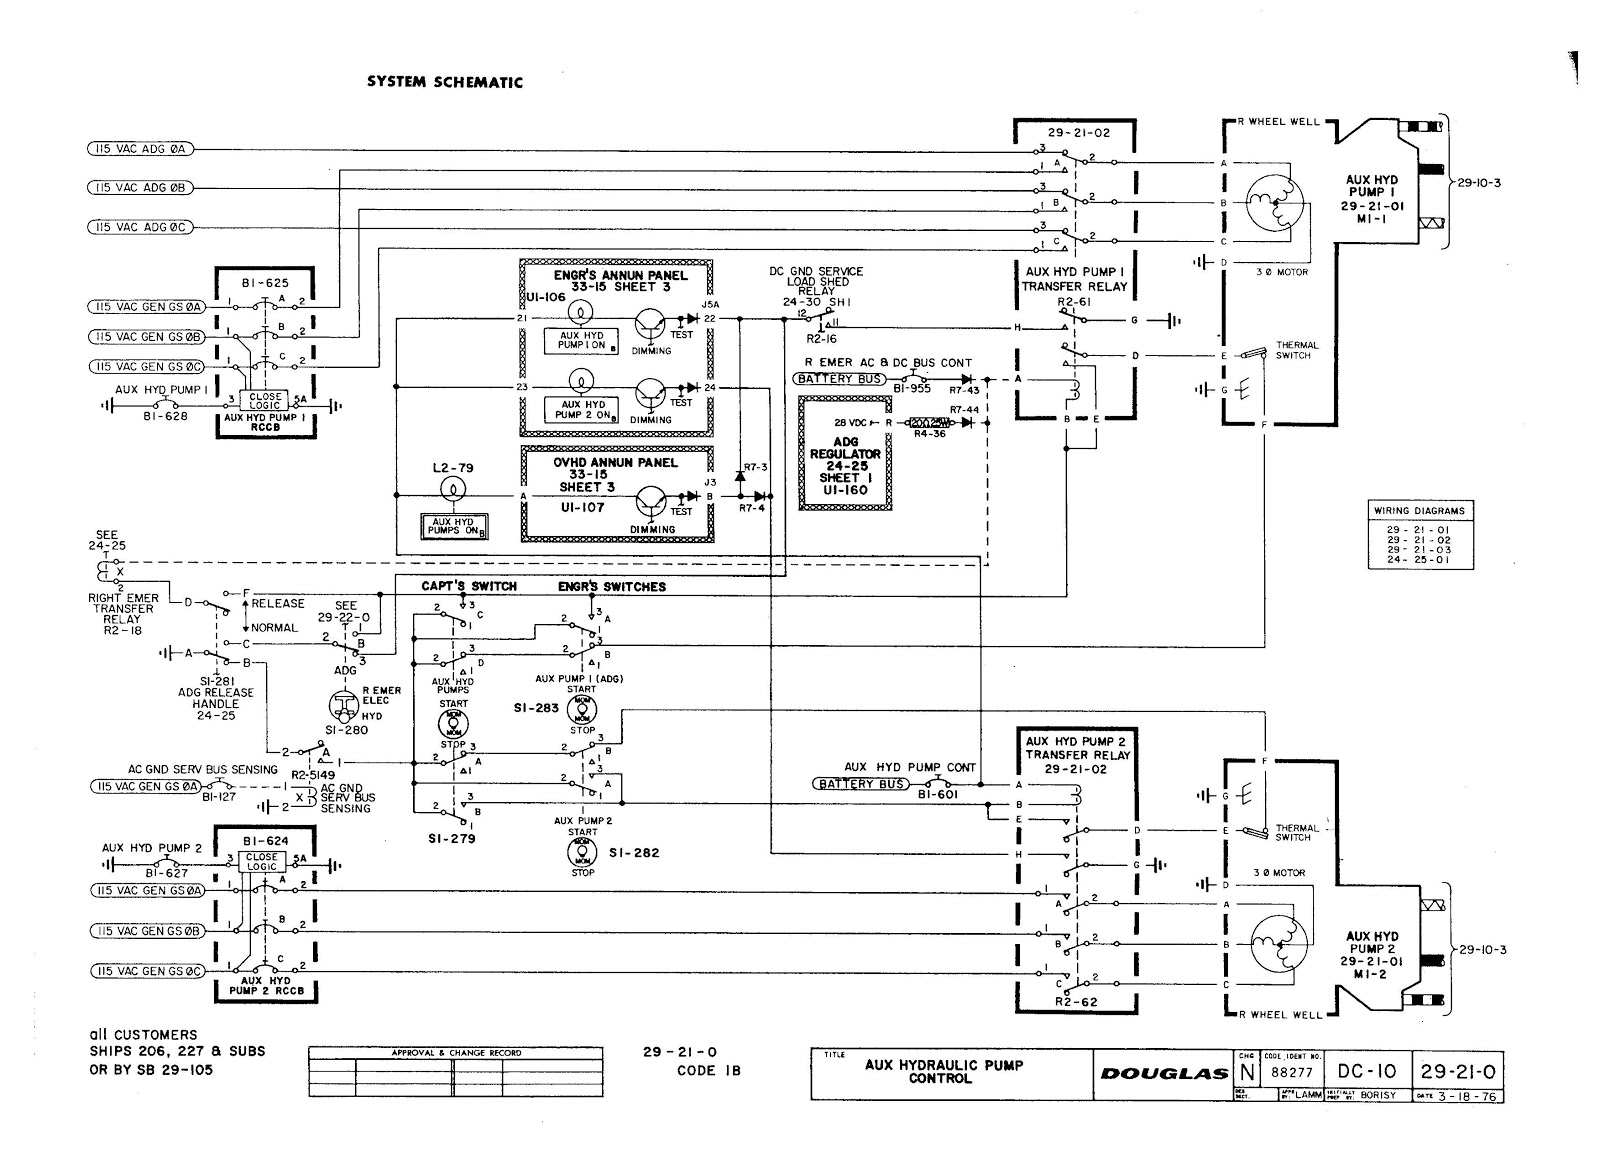 Aircraft Wiring Harness Drawing : Part virtual school aircraft wiring and schematic diagrams